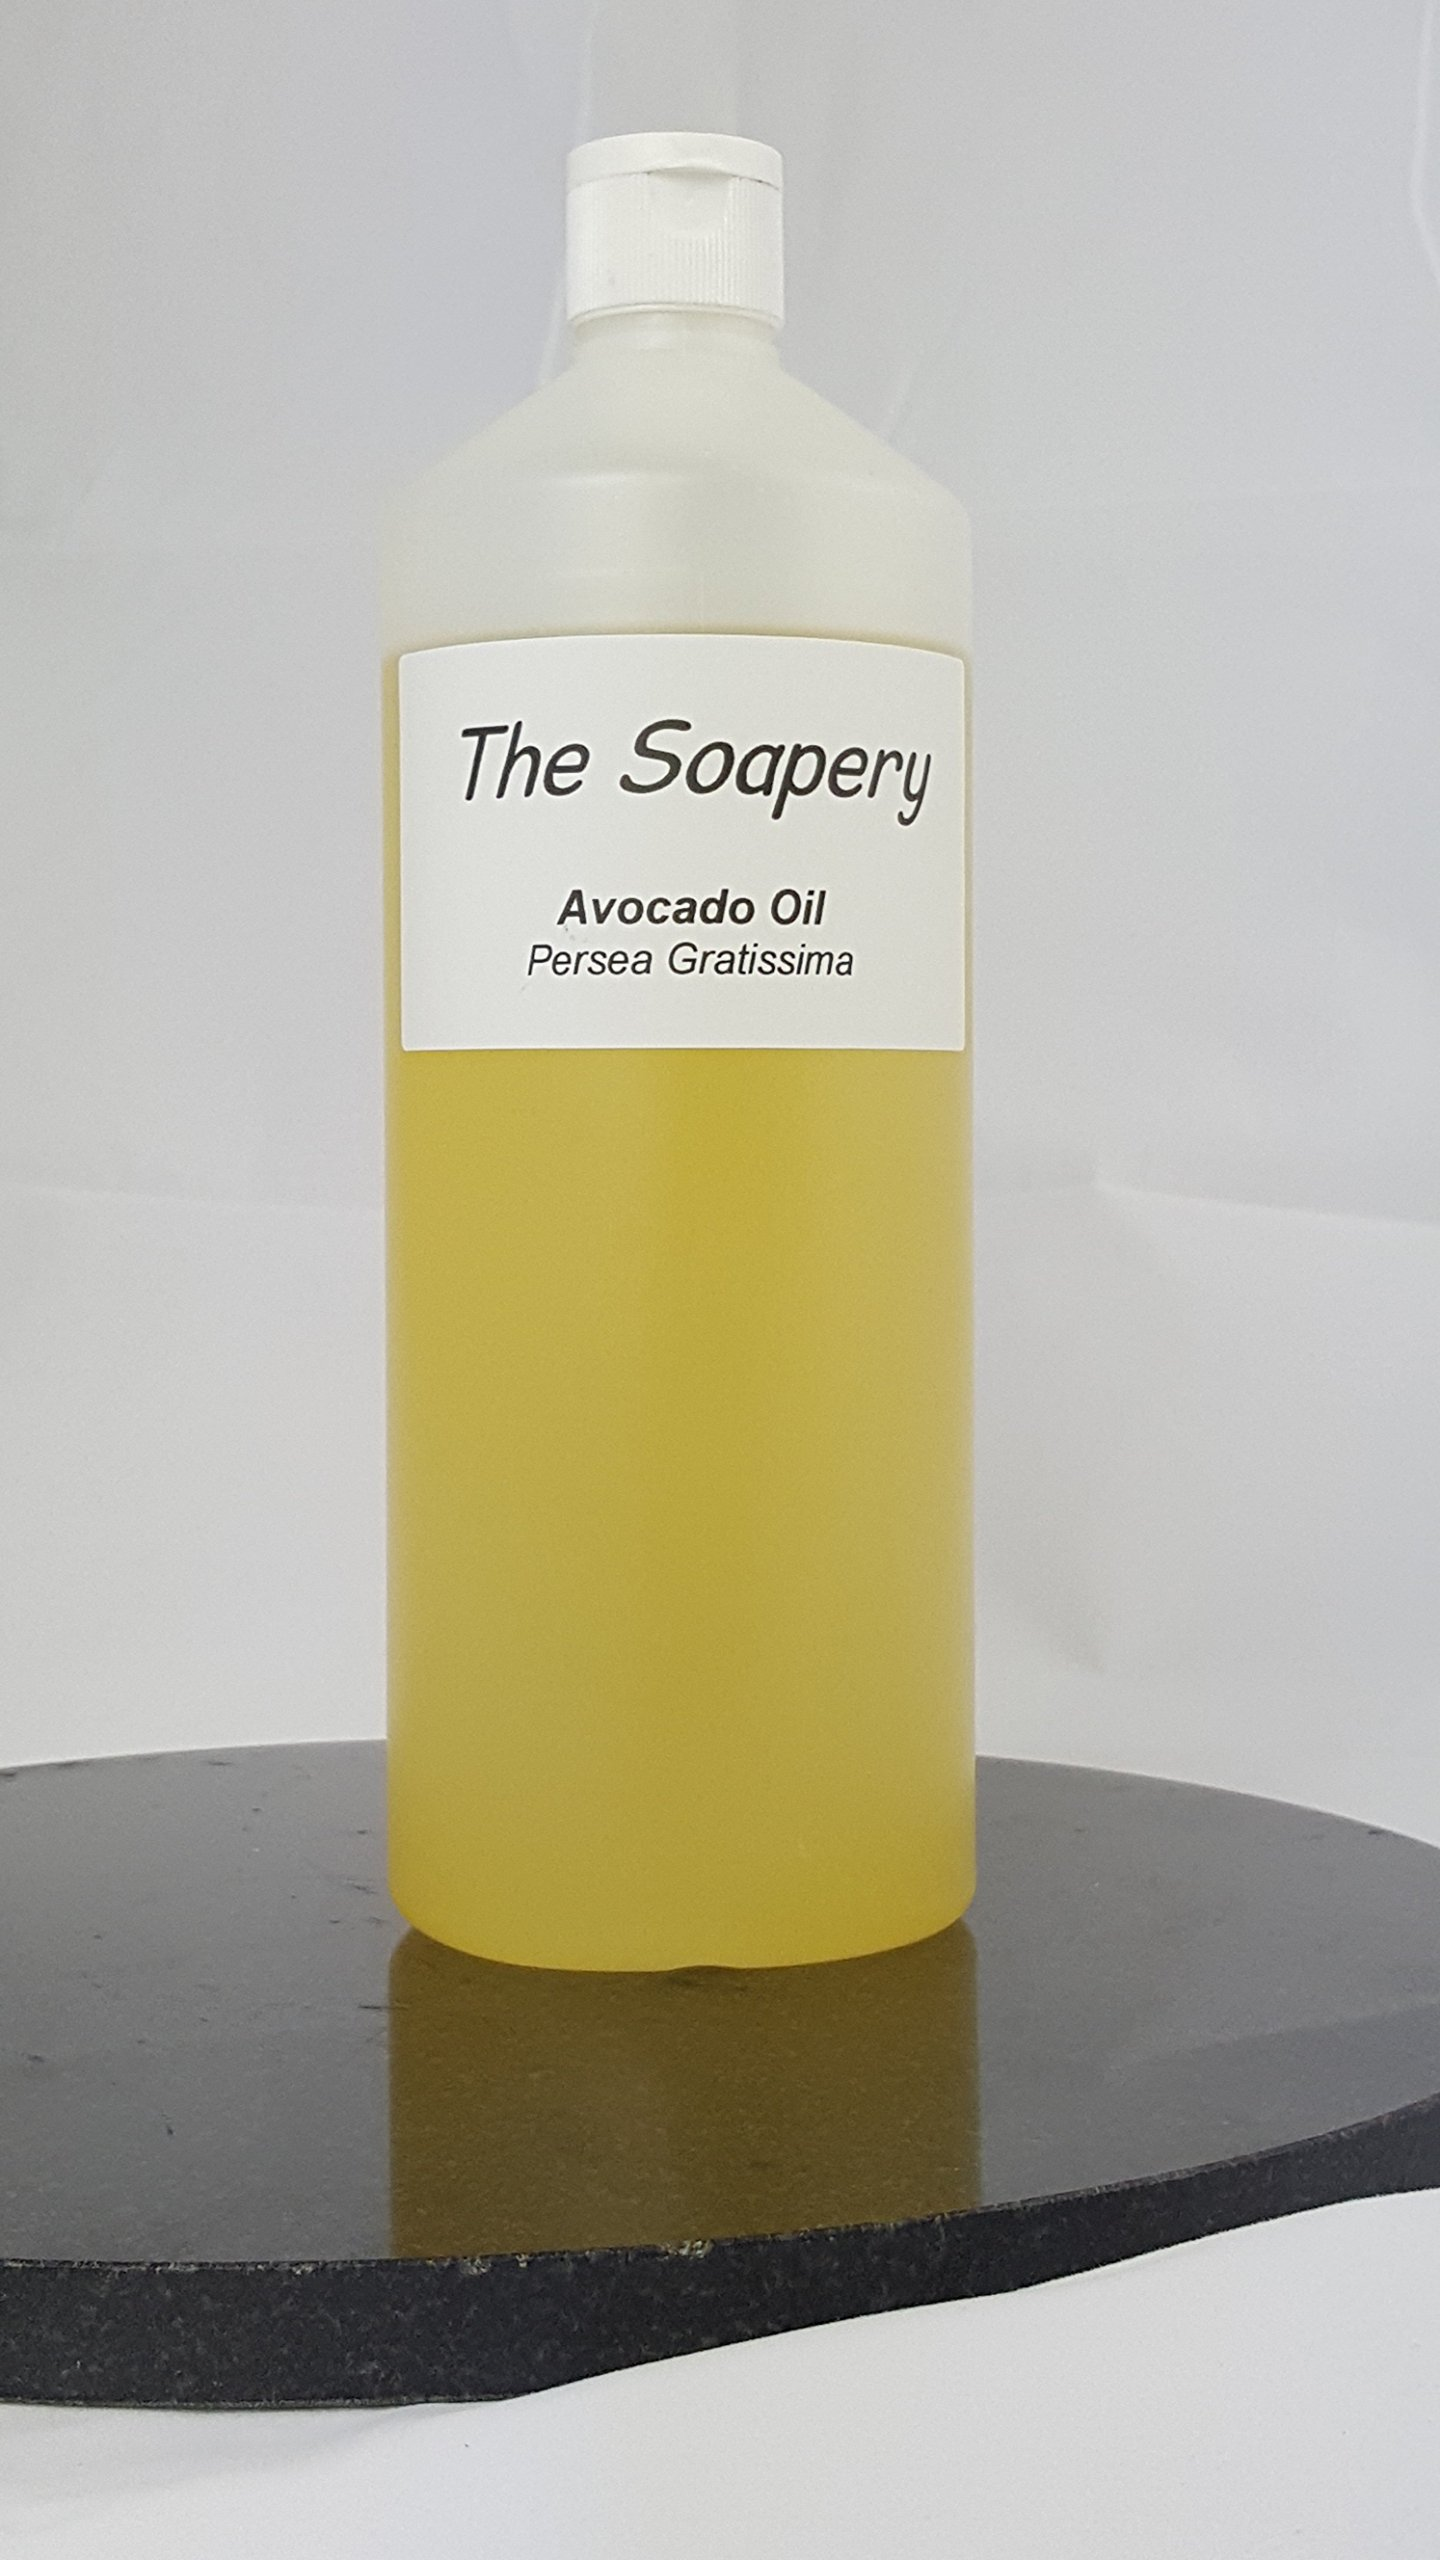 Avocado Oil - 1 Litre Refined Cosmetic Grade for Massage, Aromatherapy, Soap and Natural Skin Care